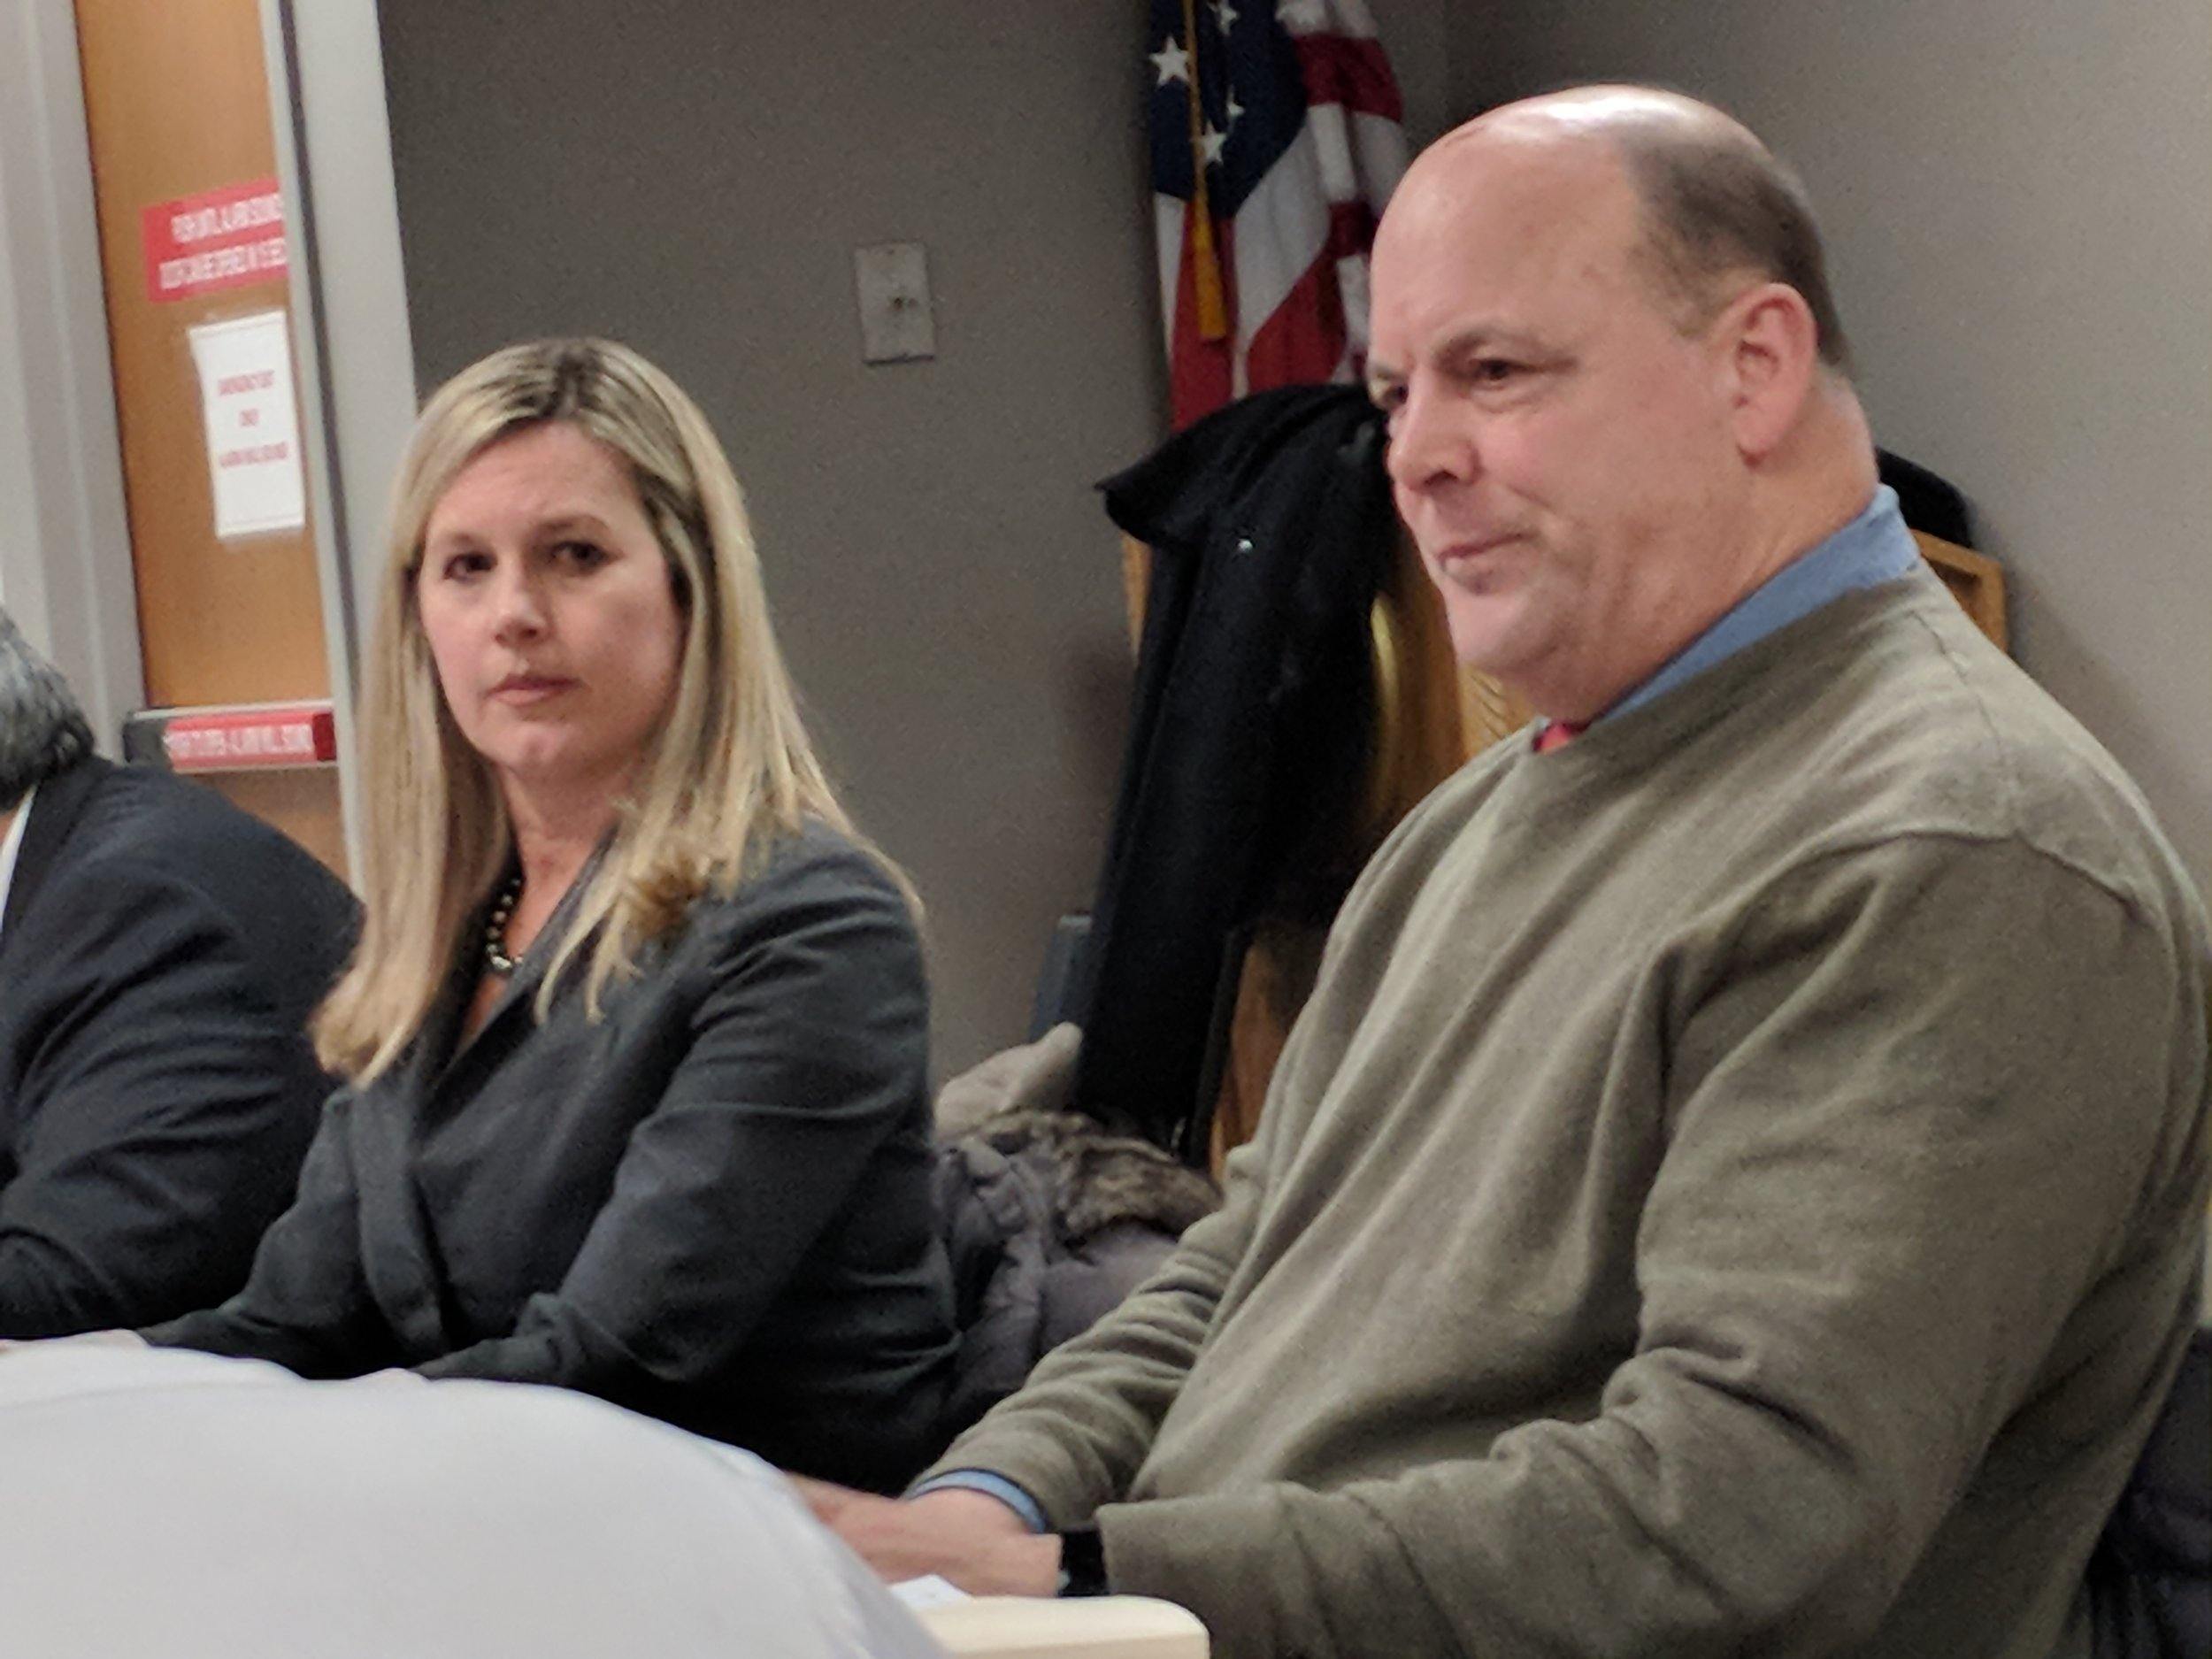 Grover Fugate, right, director of the Coastal Resources Management Council, says Rhode Island is entitled to three reviews of any offshore drilling plan. Also pictured is Jennifer Cervenka, CRMC board chair.(Tim Faulkner/ecoRI News)